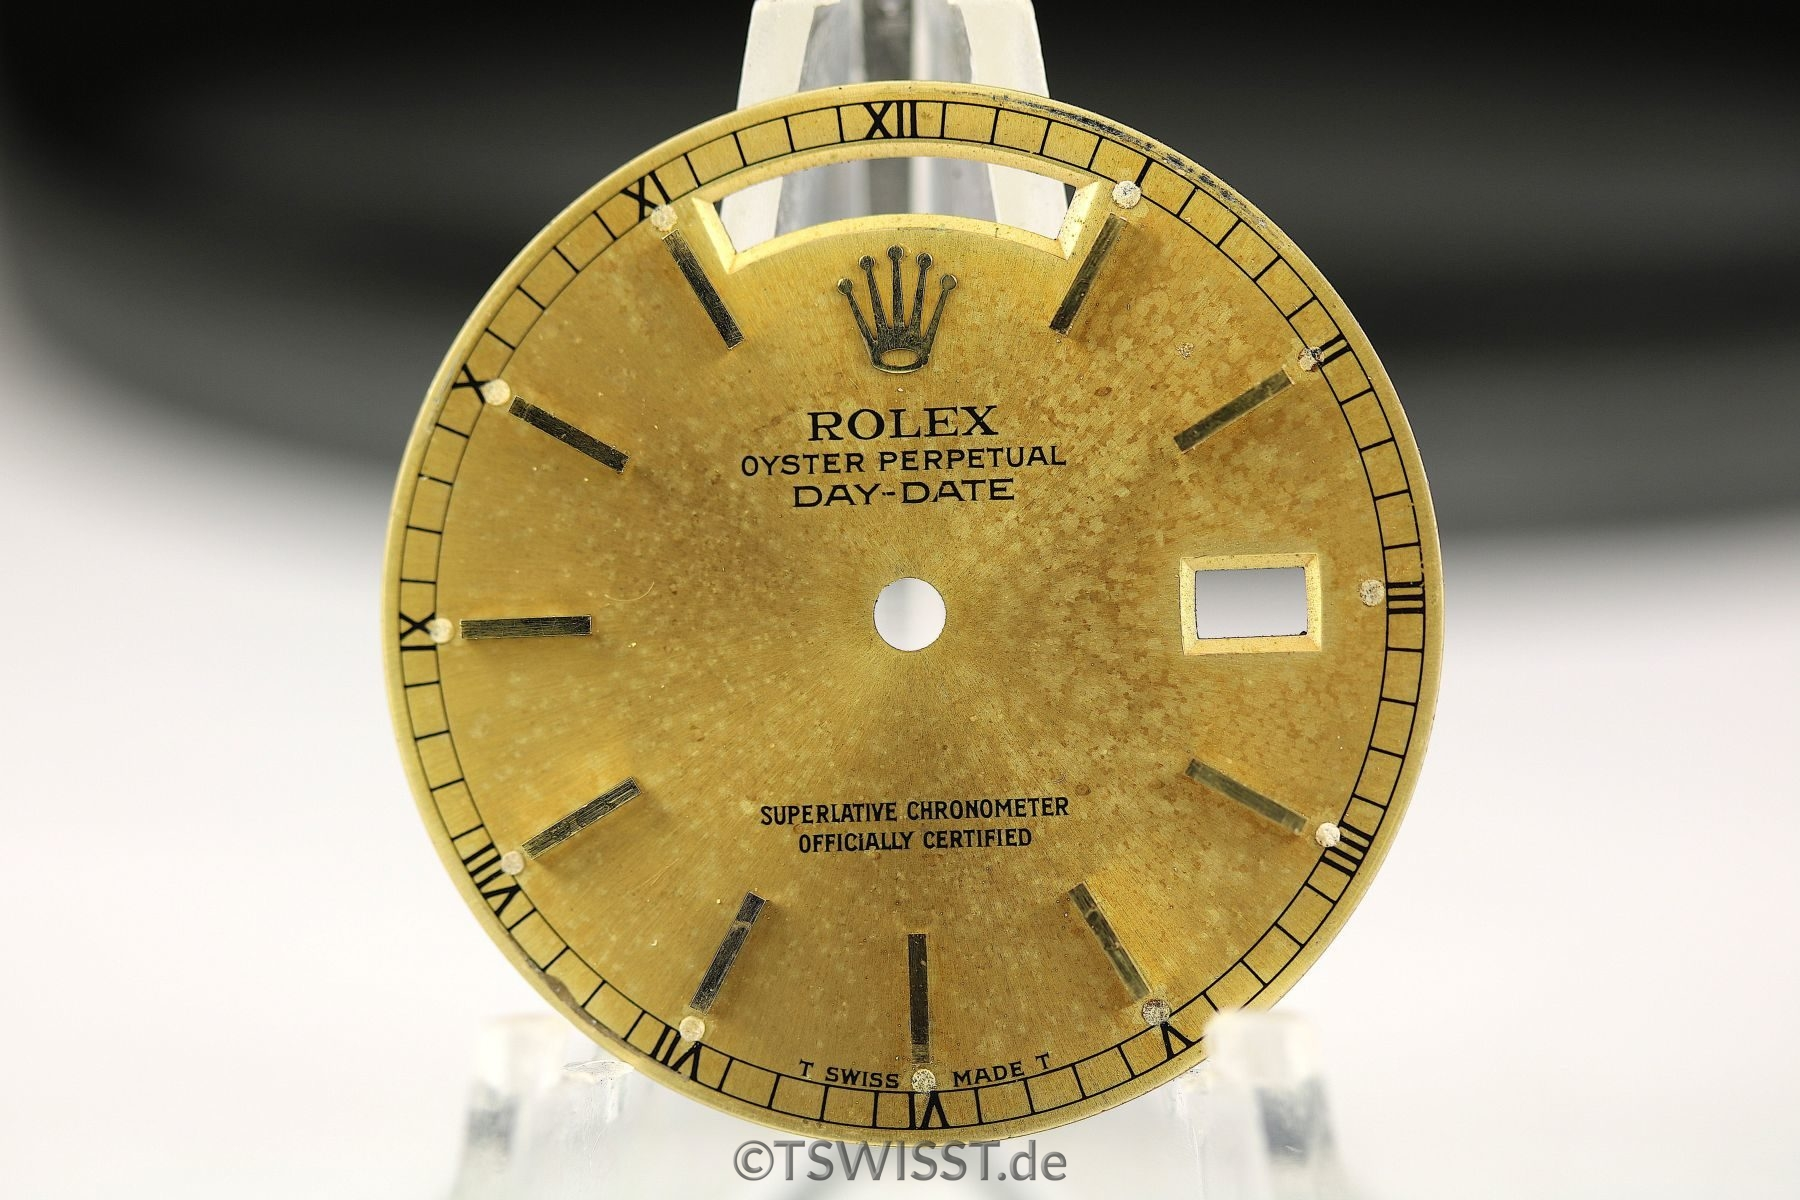 Rolex Day Date 180*8 dial